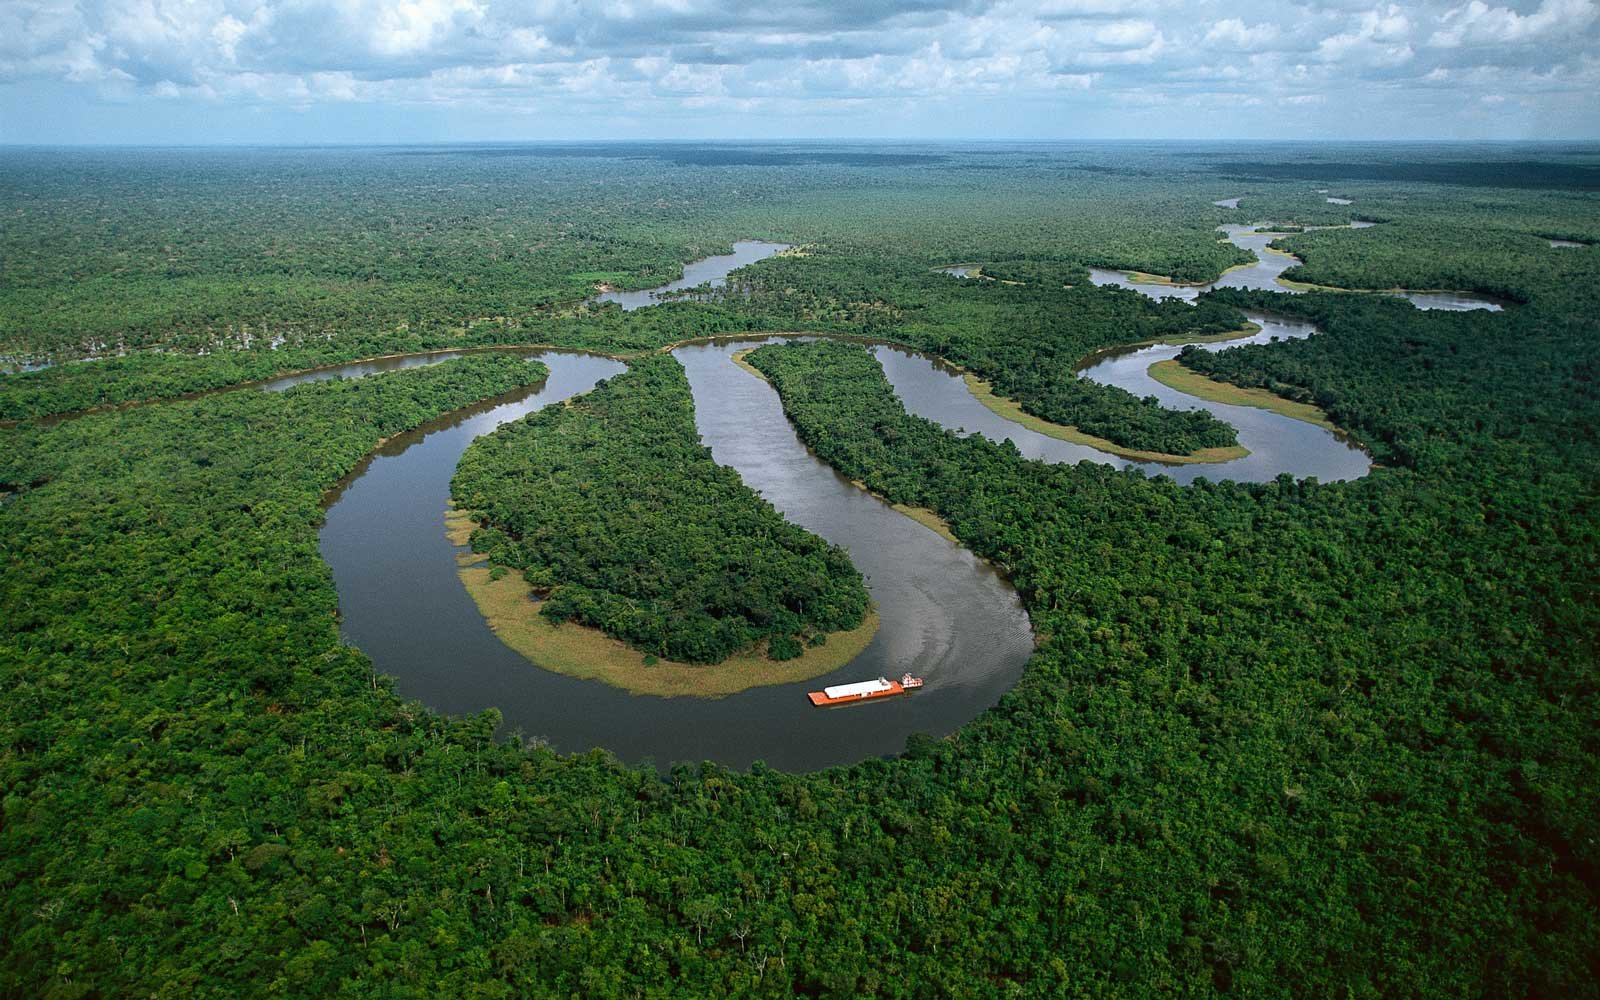 Meanders in the Amazon River near Manaus, Brazil